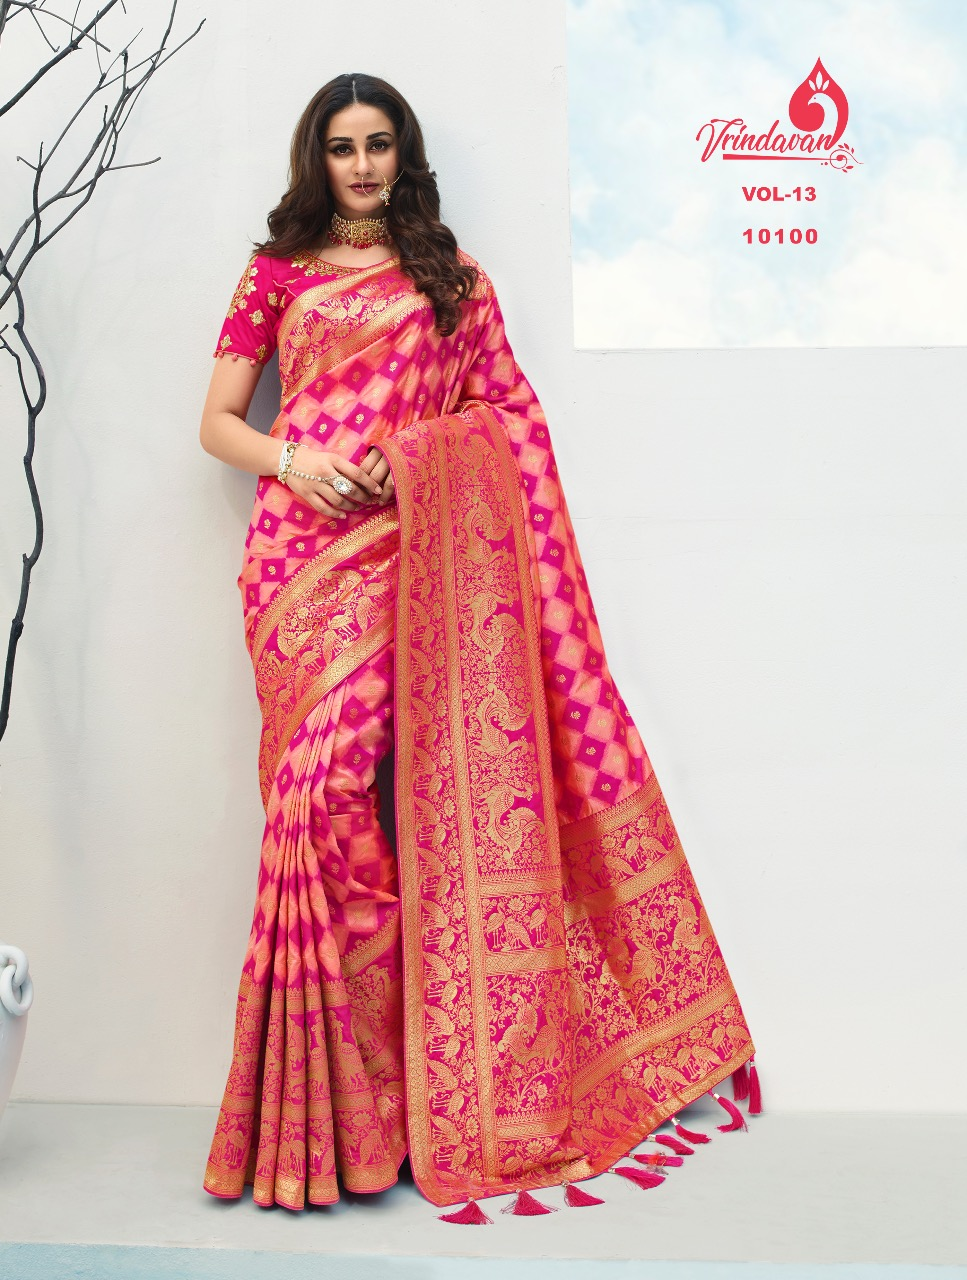 Vrindavan Hit List Soft Silk Heavy Wedding Wear Sarees Collection At Wholesale Rate